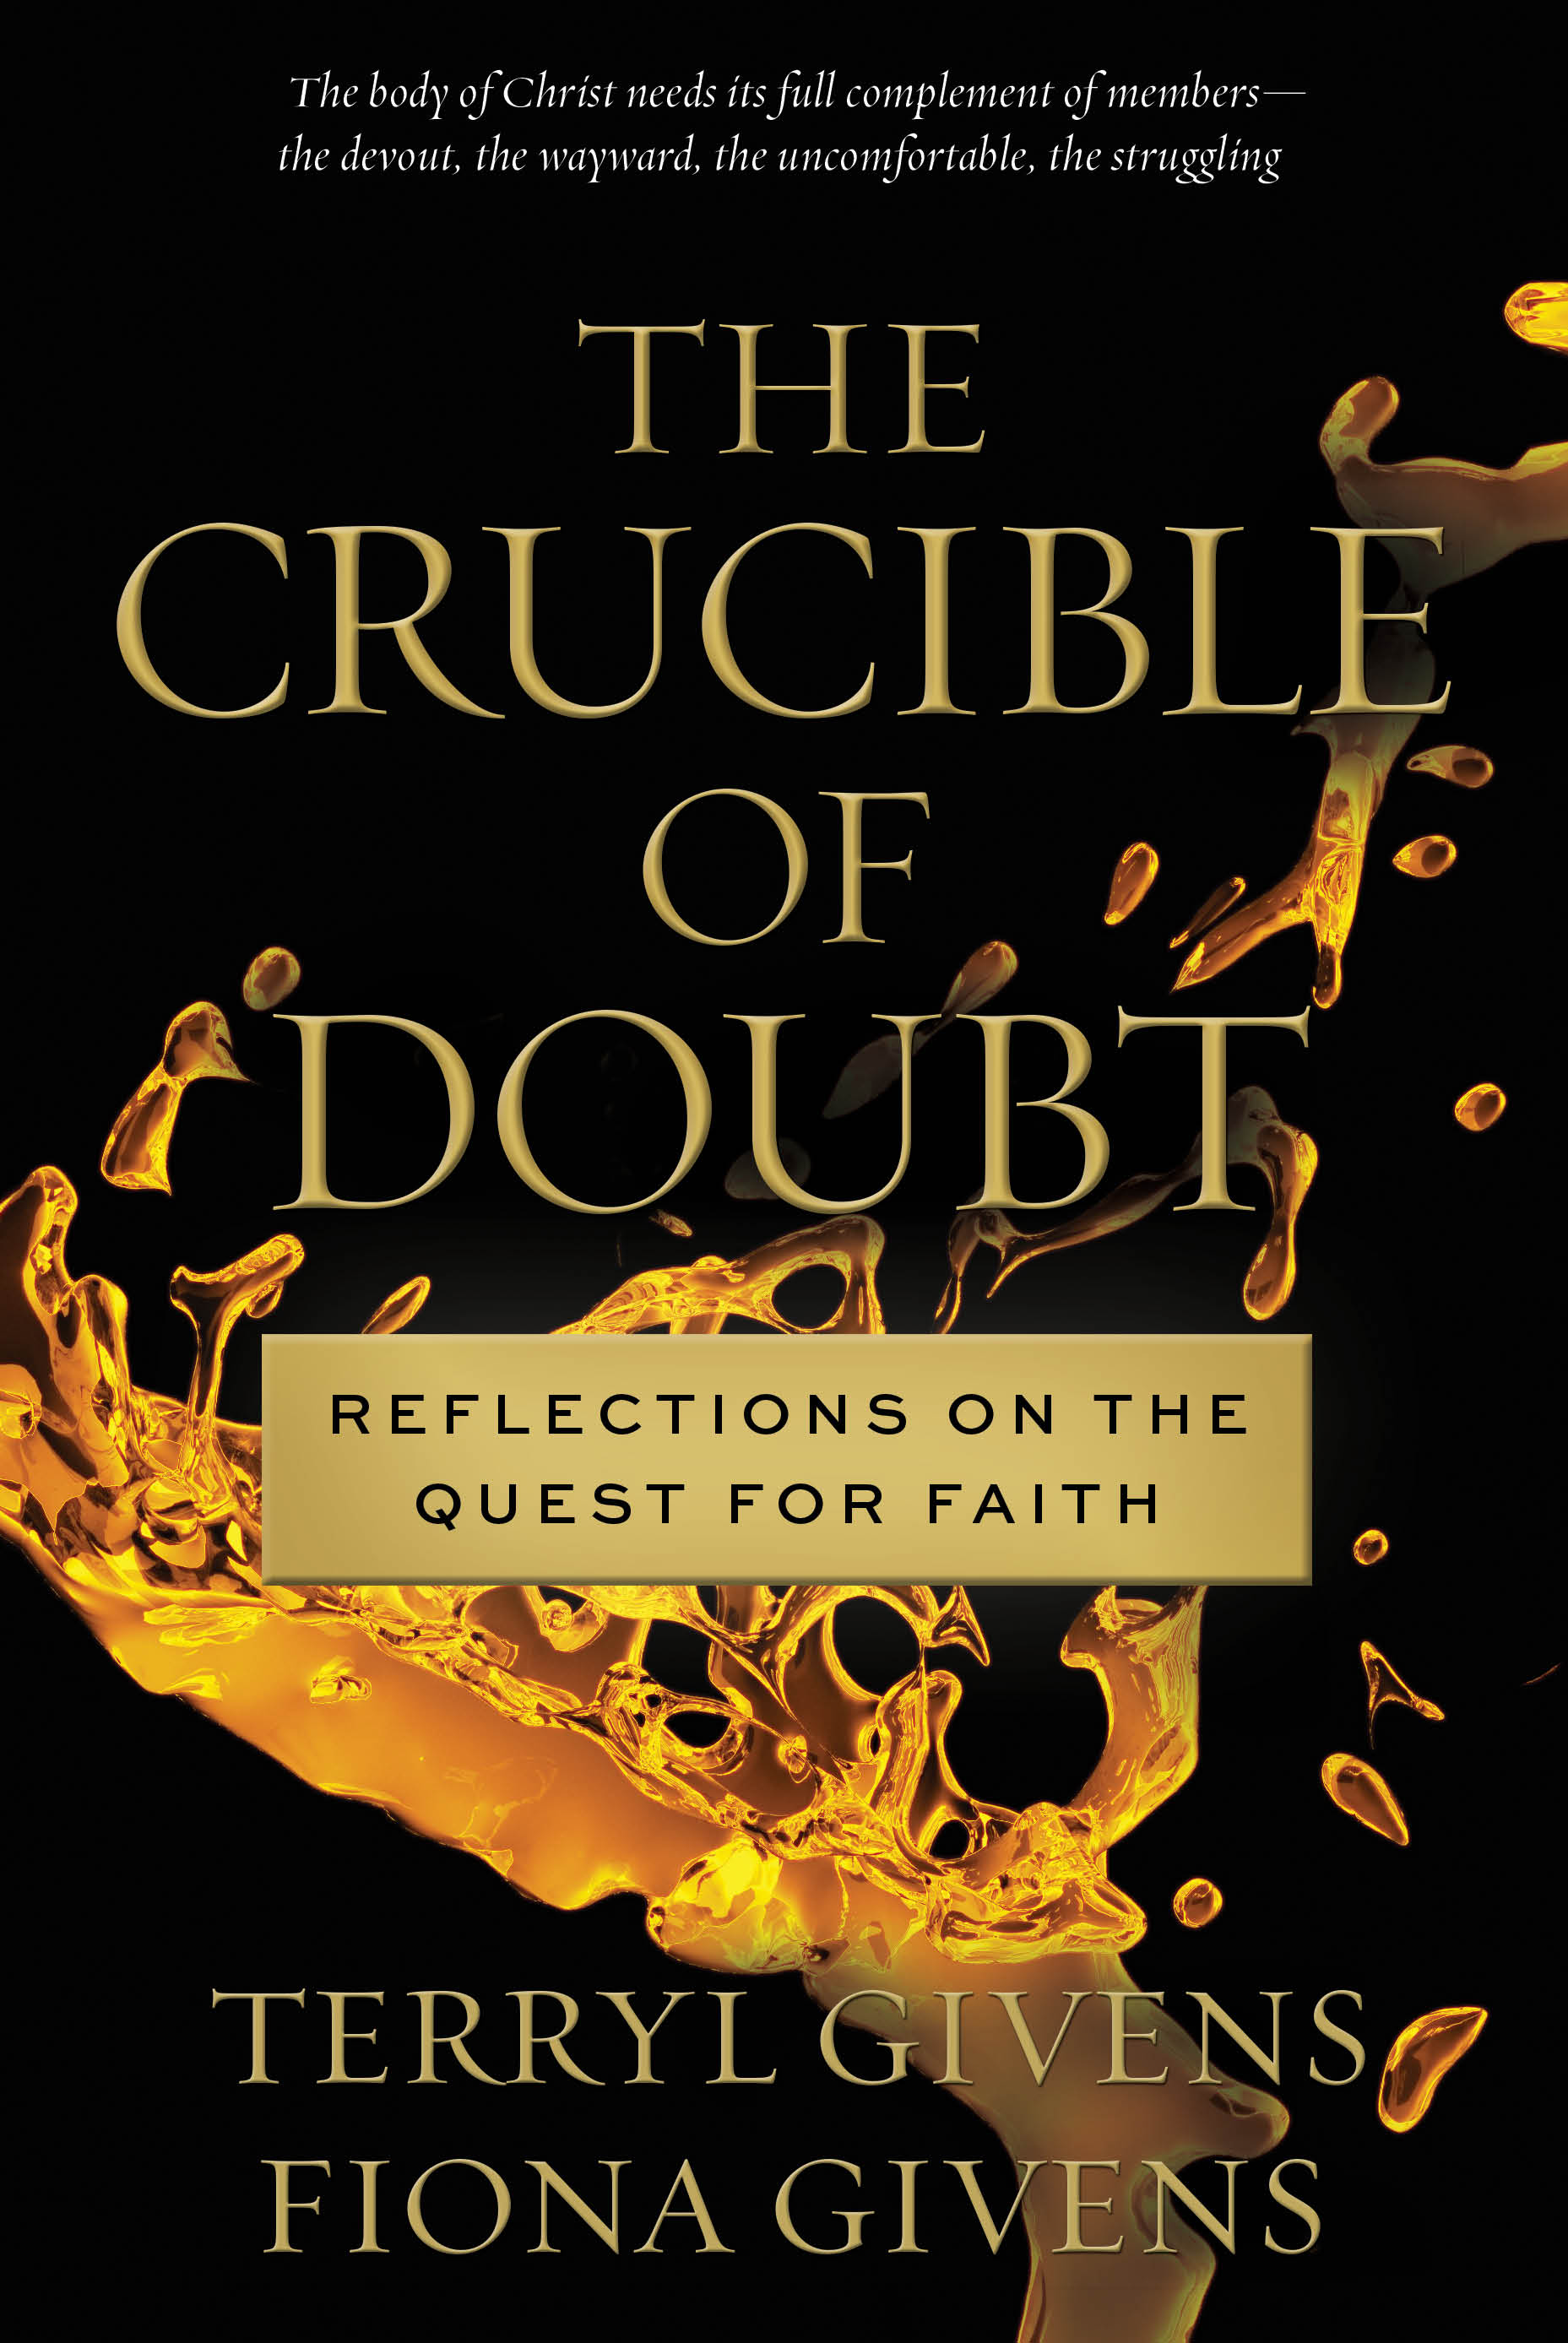 Fiona And Terryl Givens And The Crucible Of Doubt  Parts  Crucible Of Doubt